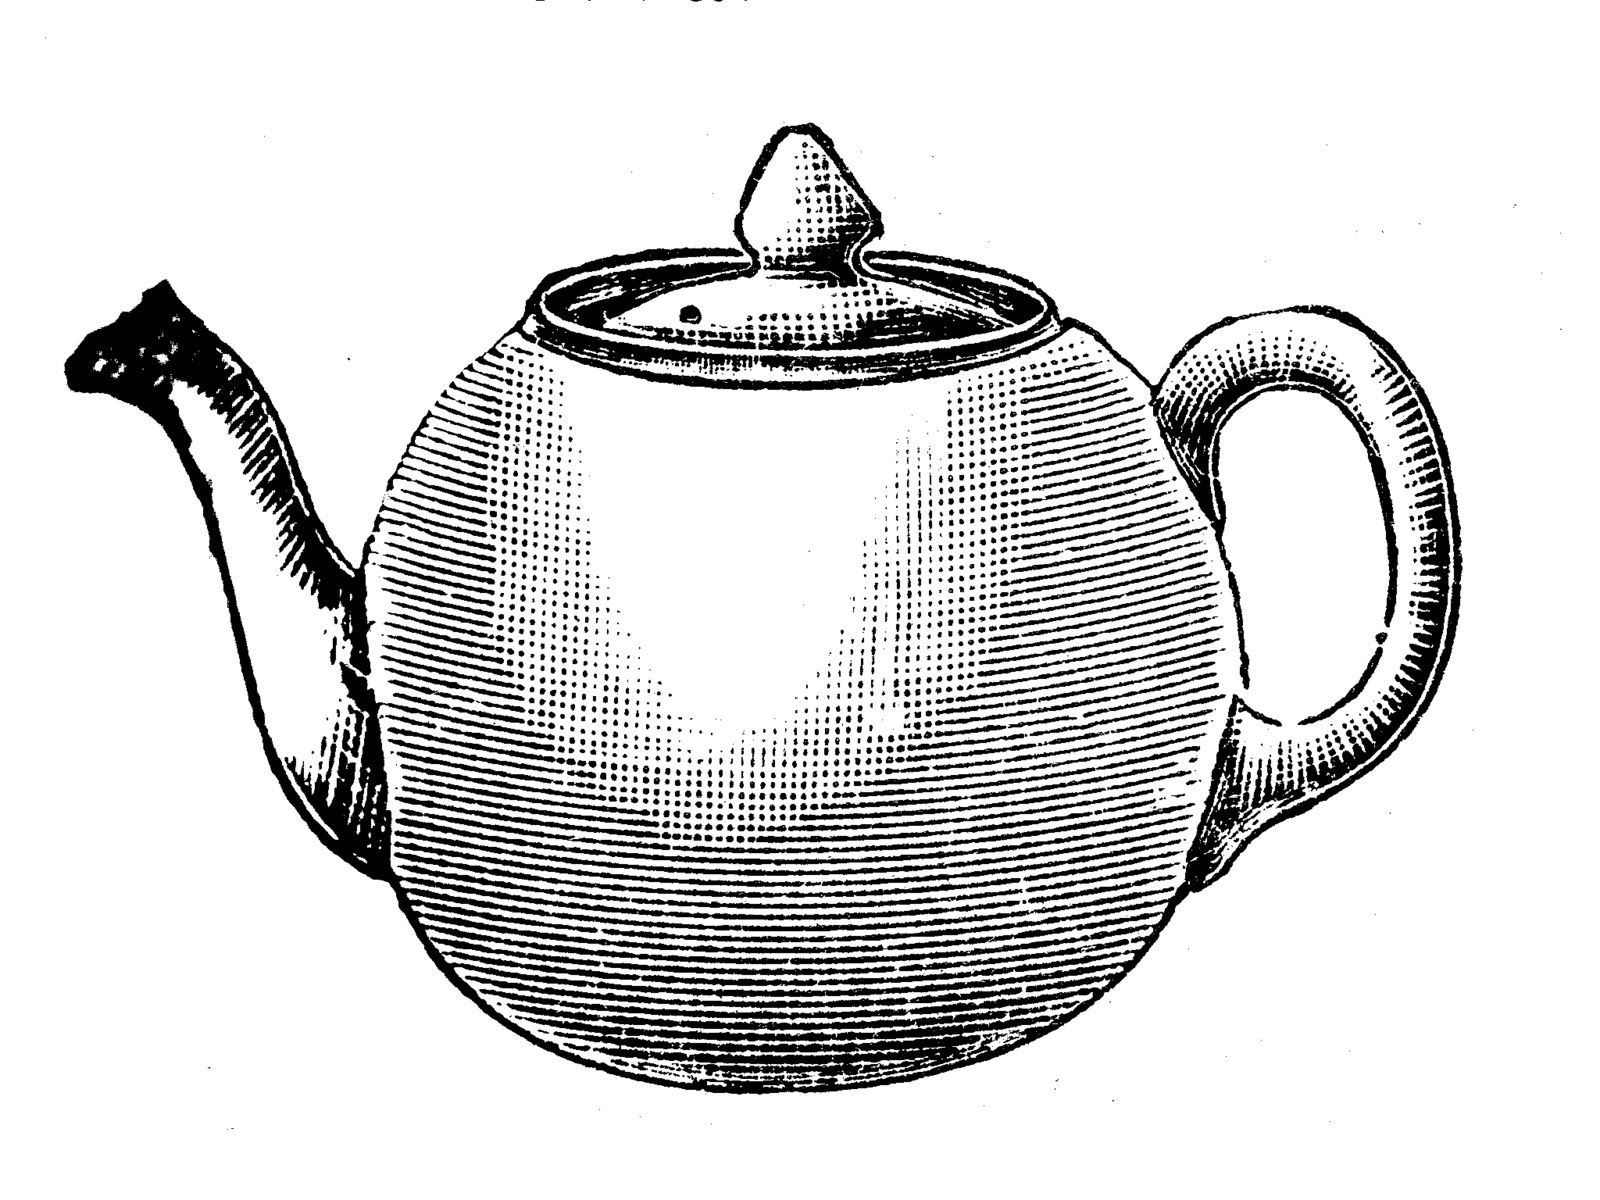 Free vintage clip art images: Vintage tea party crockery.